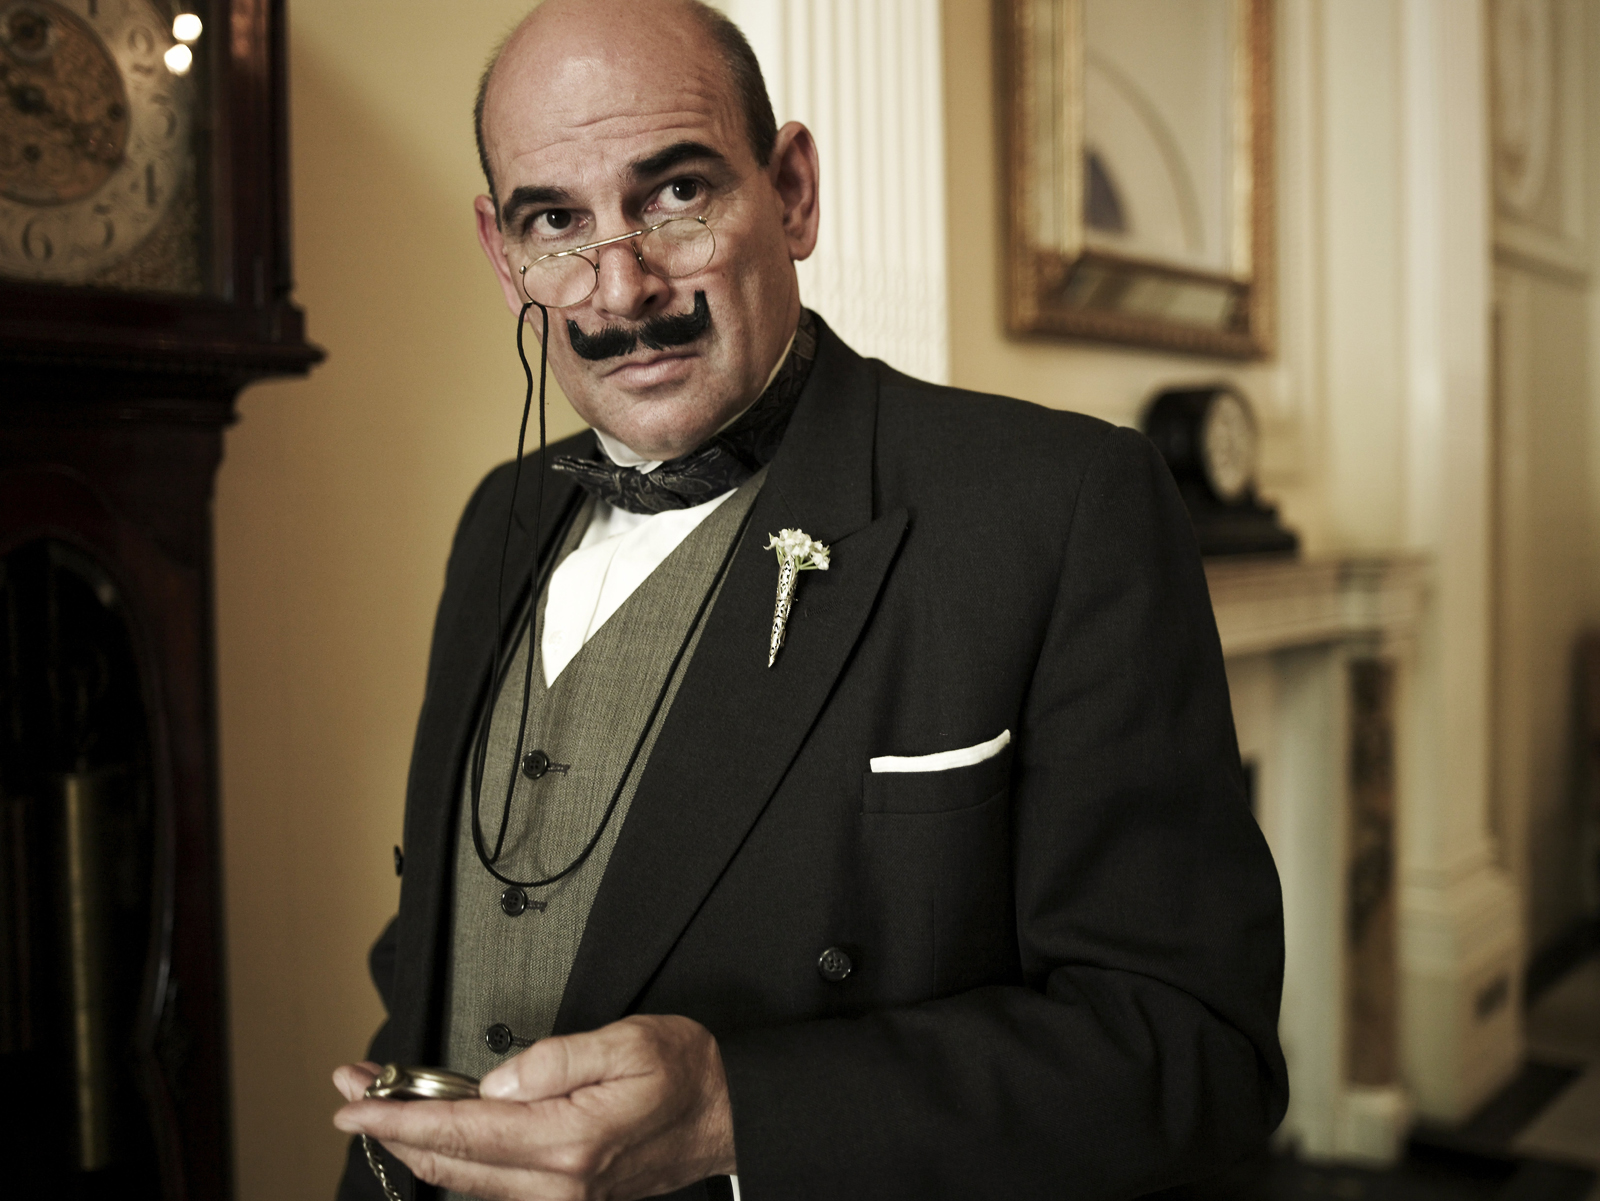 Hercule Poirot created by Torquay born Queen of Crime Agatha Christie